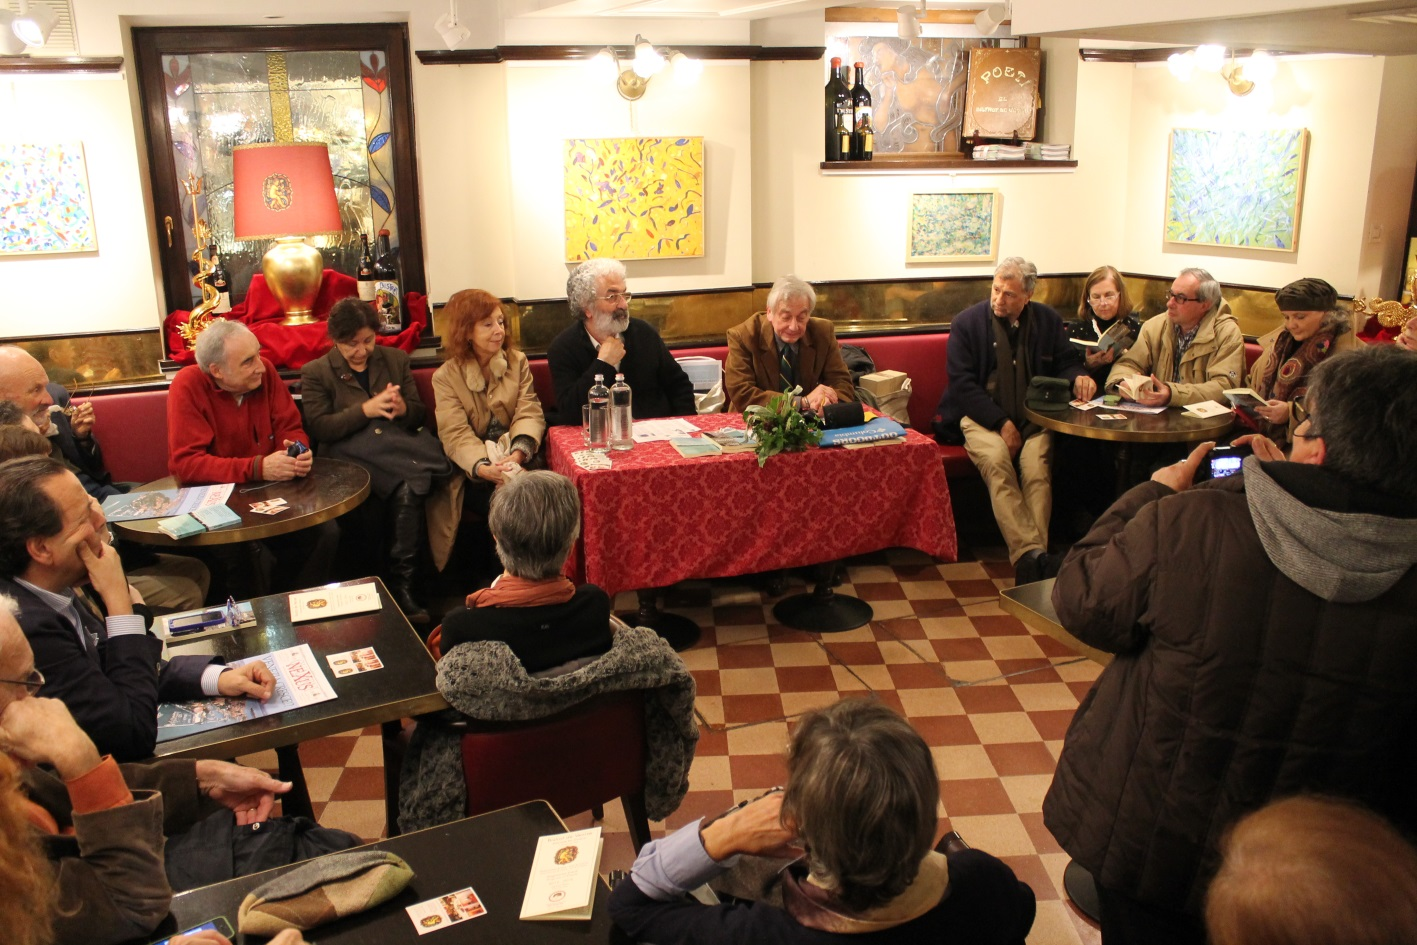 Event In the Bistrot | Courtesy Of Bistrot de Venise